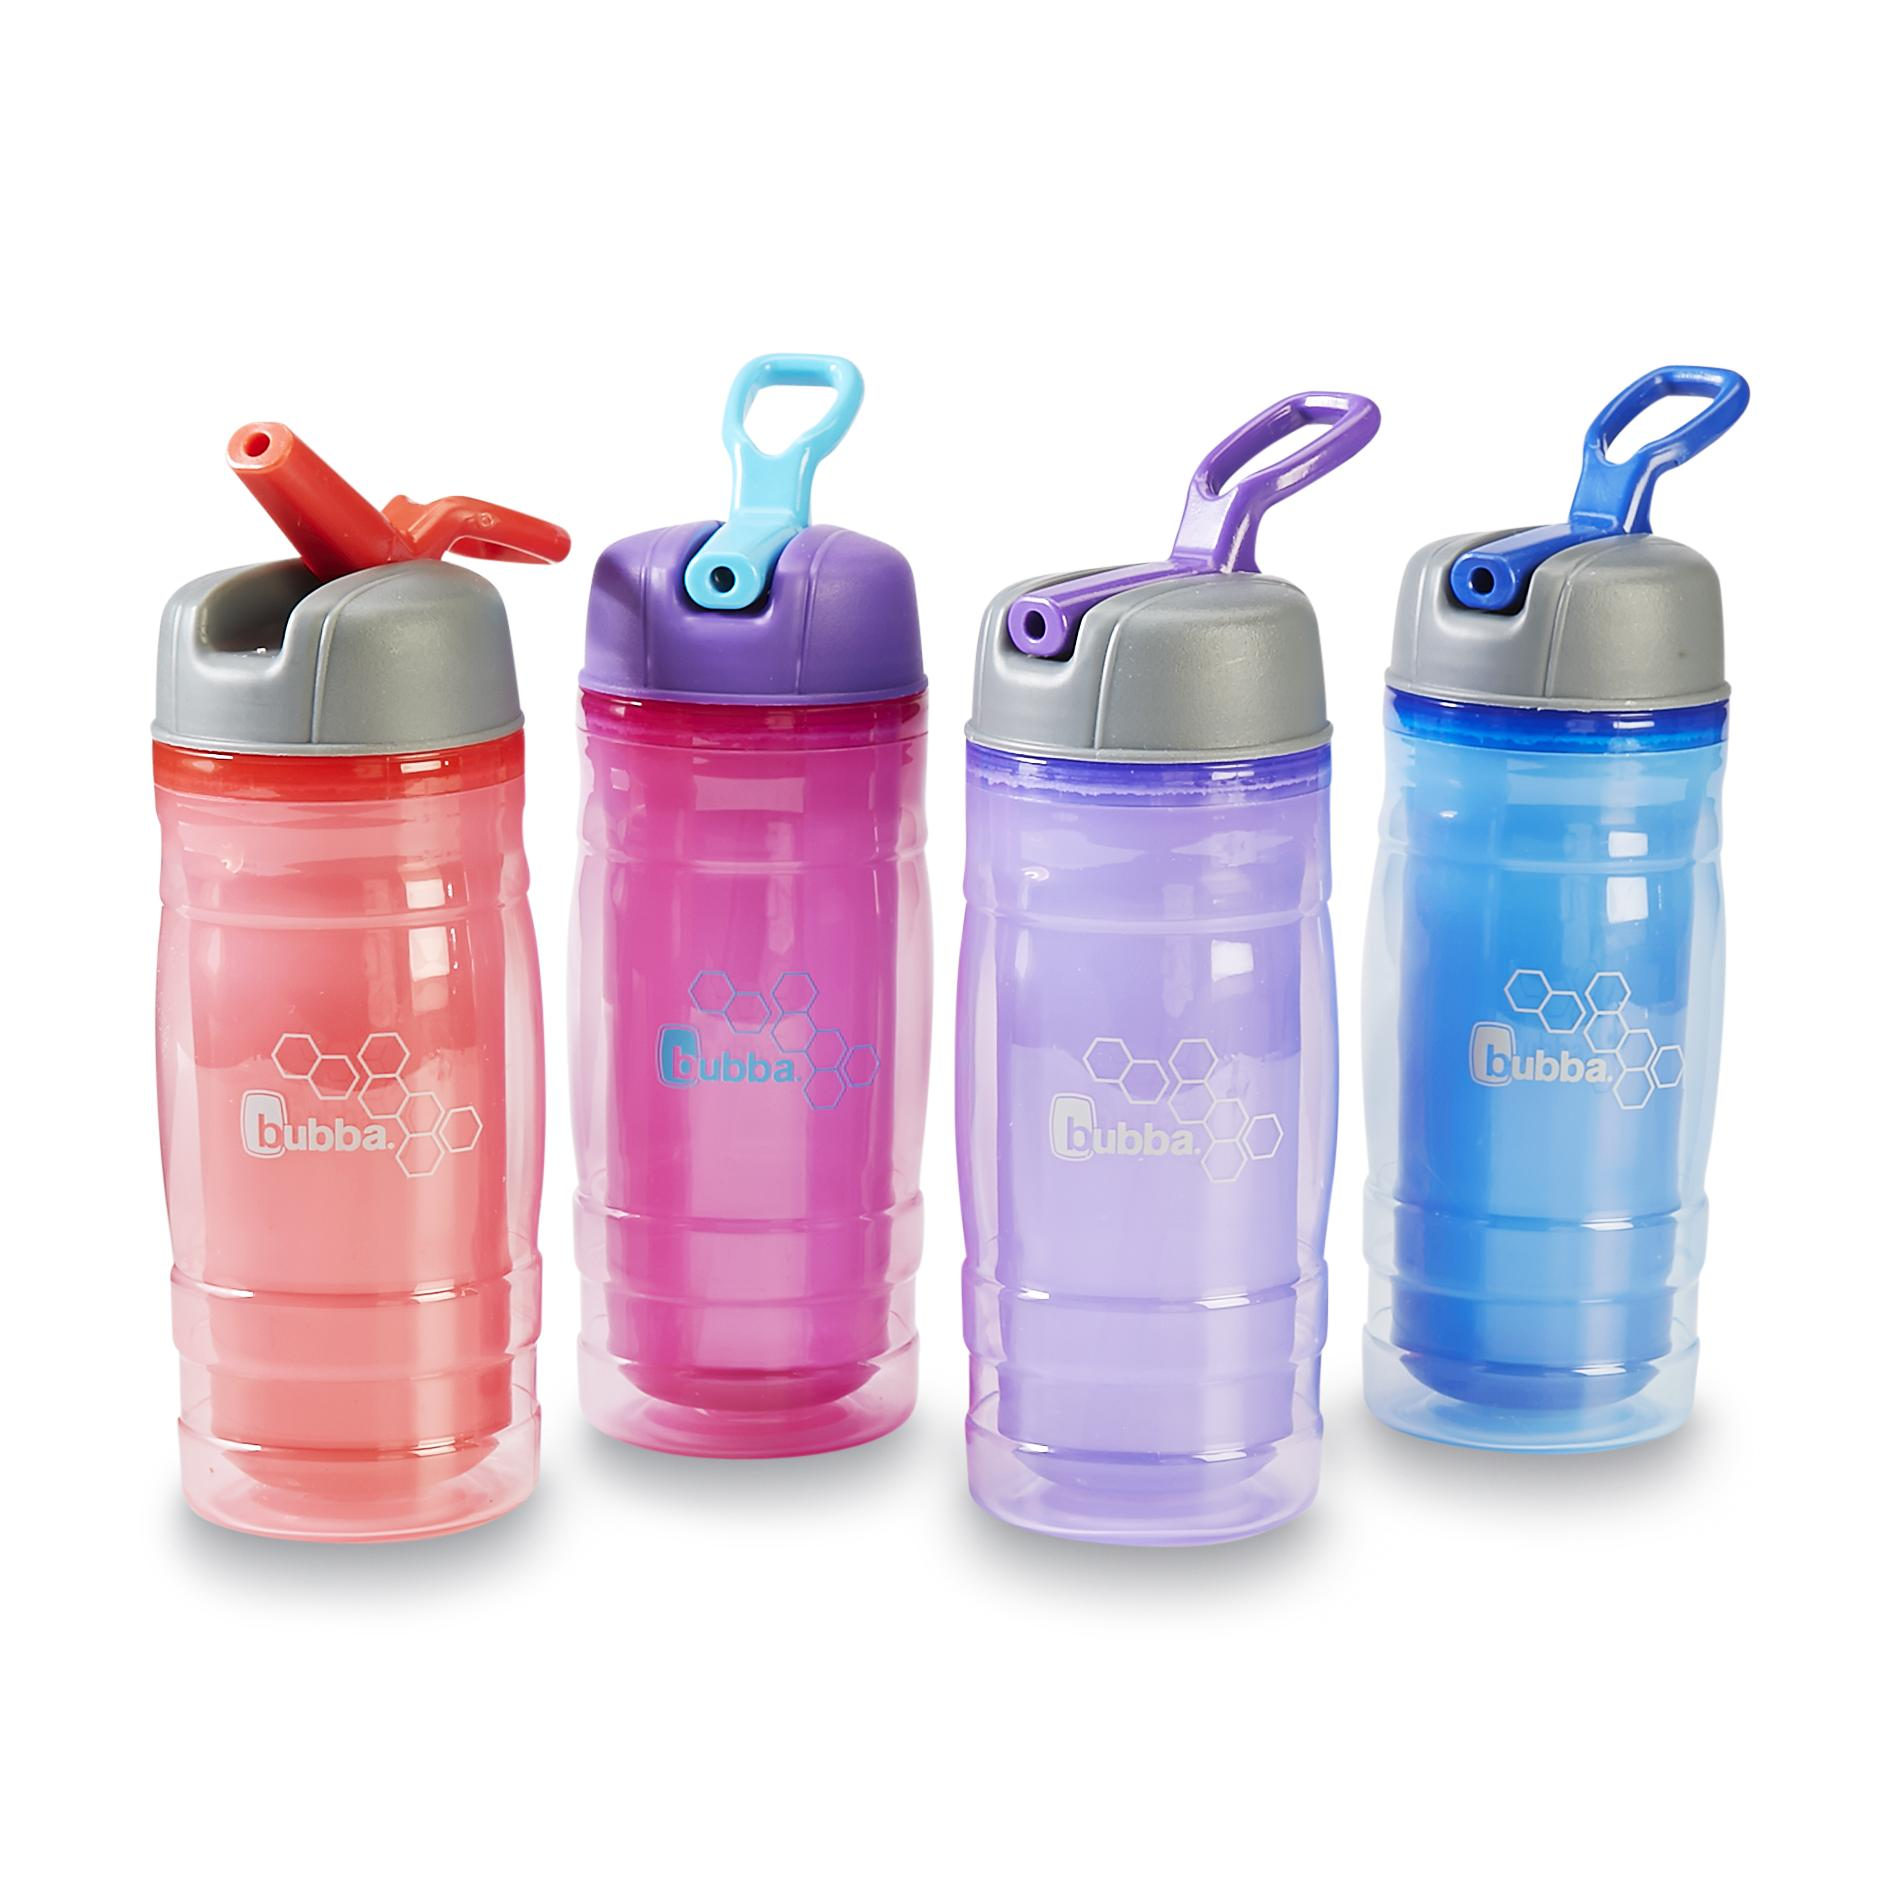 Image of Bubba Brands Kid's Raptor Sport Insulated Water Bottle Assorted Colors, Brown